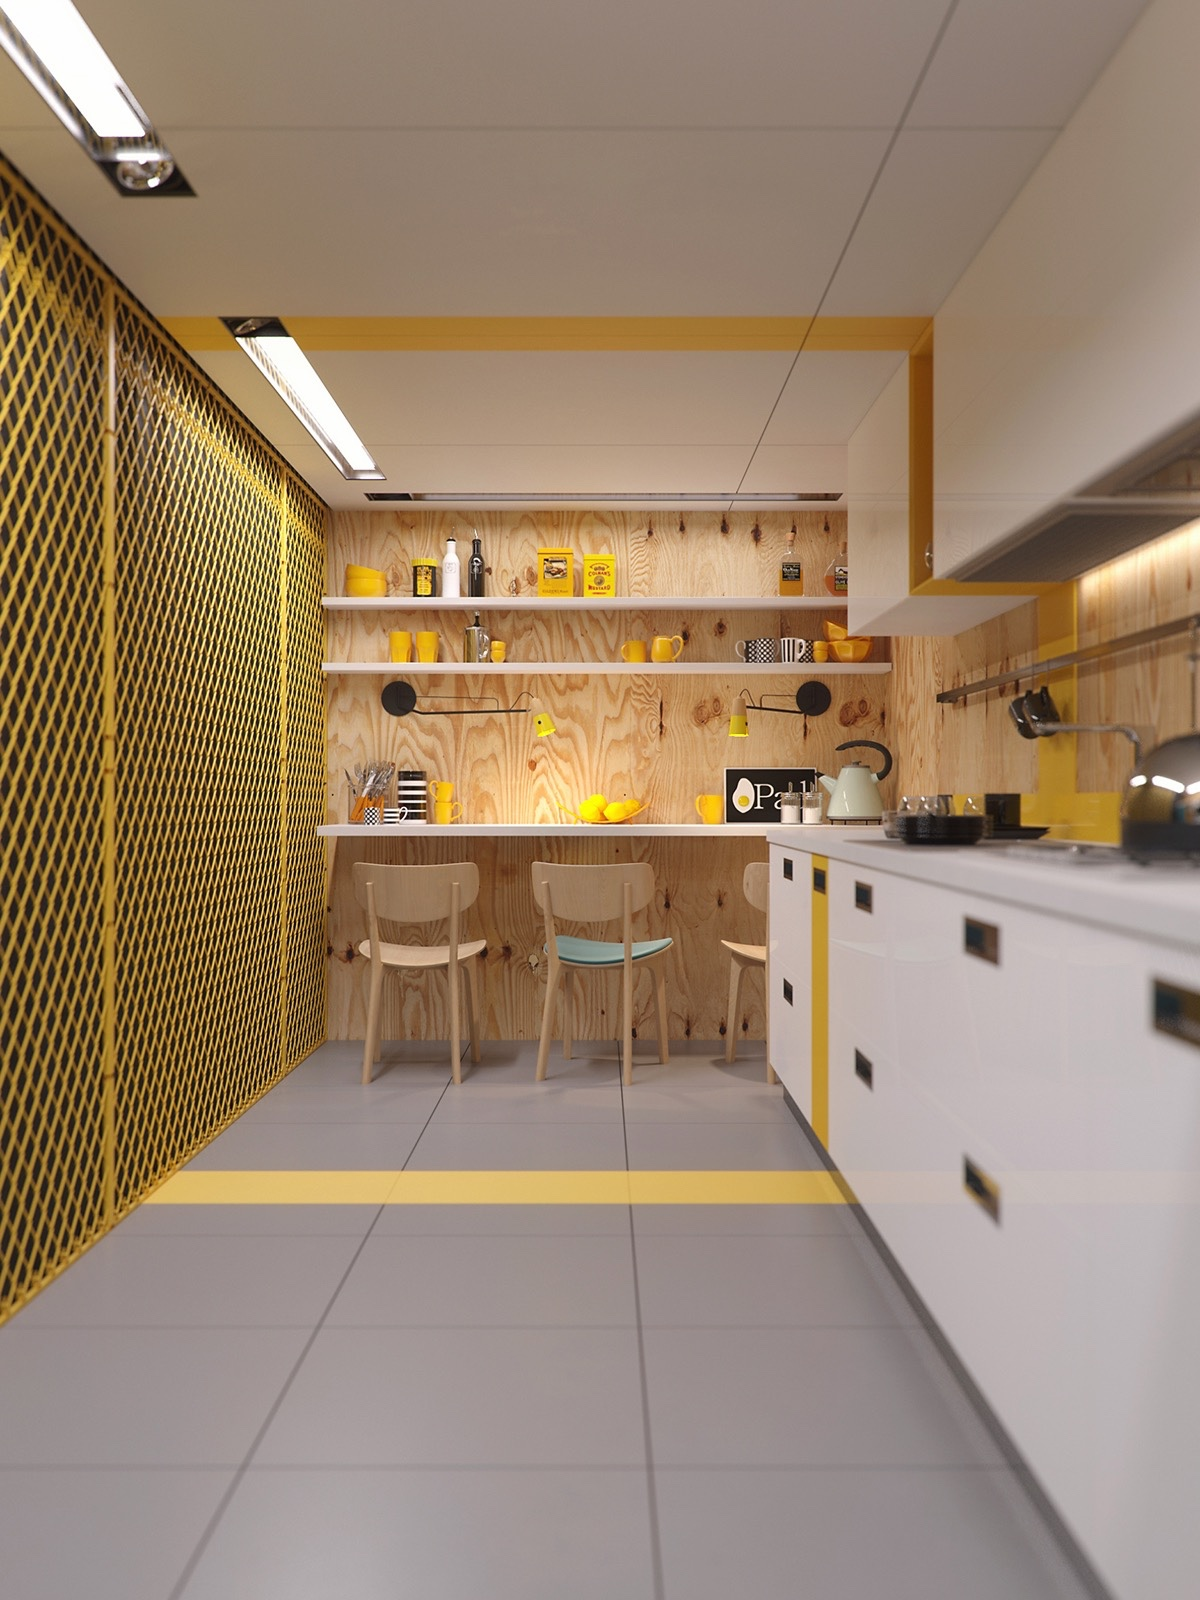 industrial-kitchen-in-yellow-white-and-wood-open-shelving